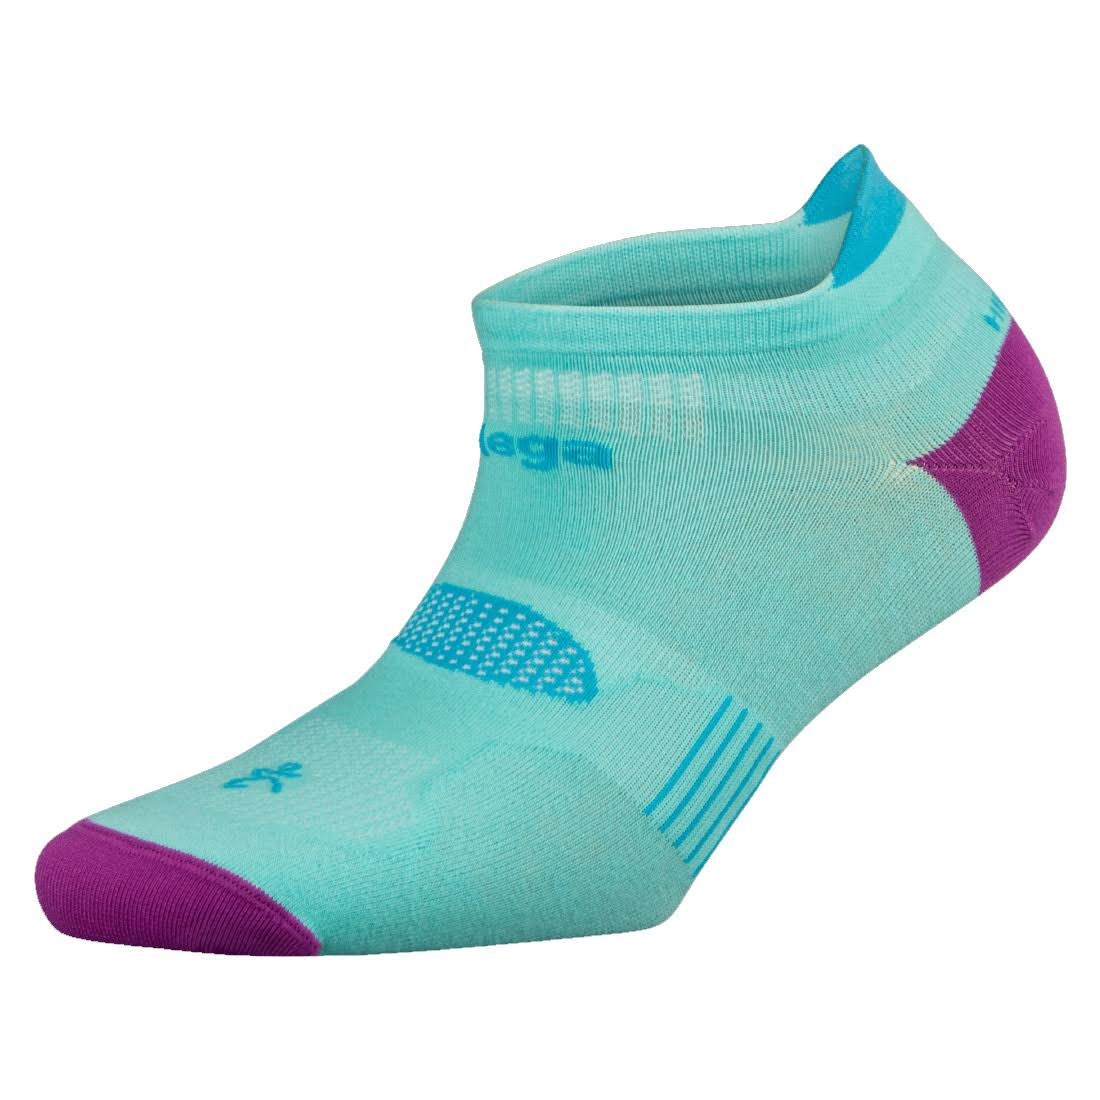 Balega Hidden Dry Socks BAL8948 Light Aqua/Pinkberry - Small